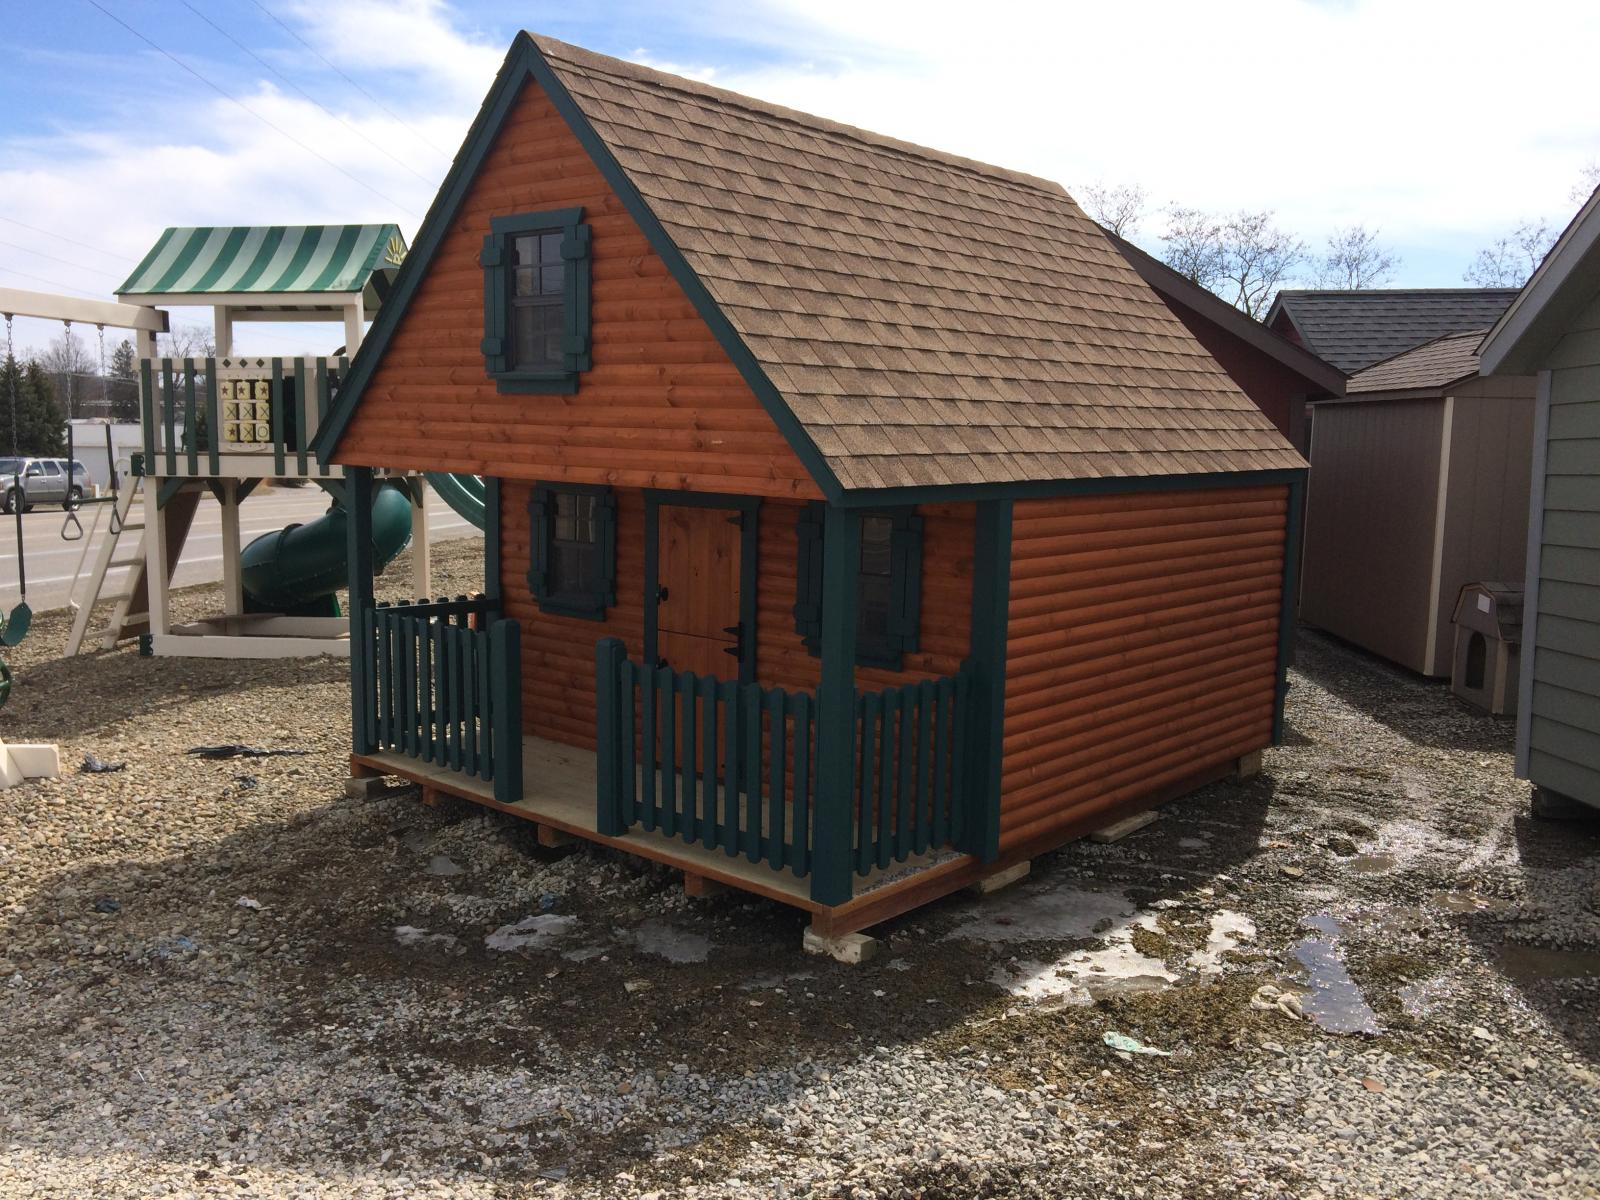 10x12 Wolf Log Cabin Playhouse Pine Creek Structures